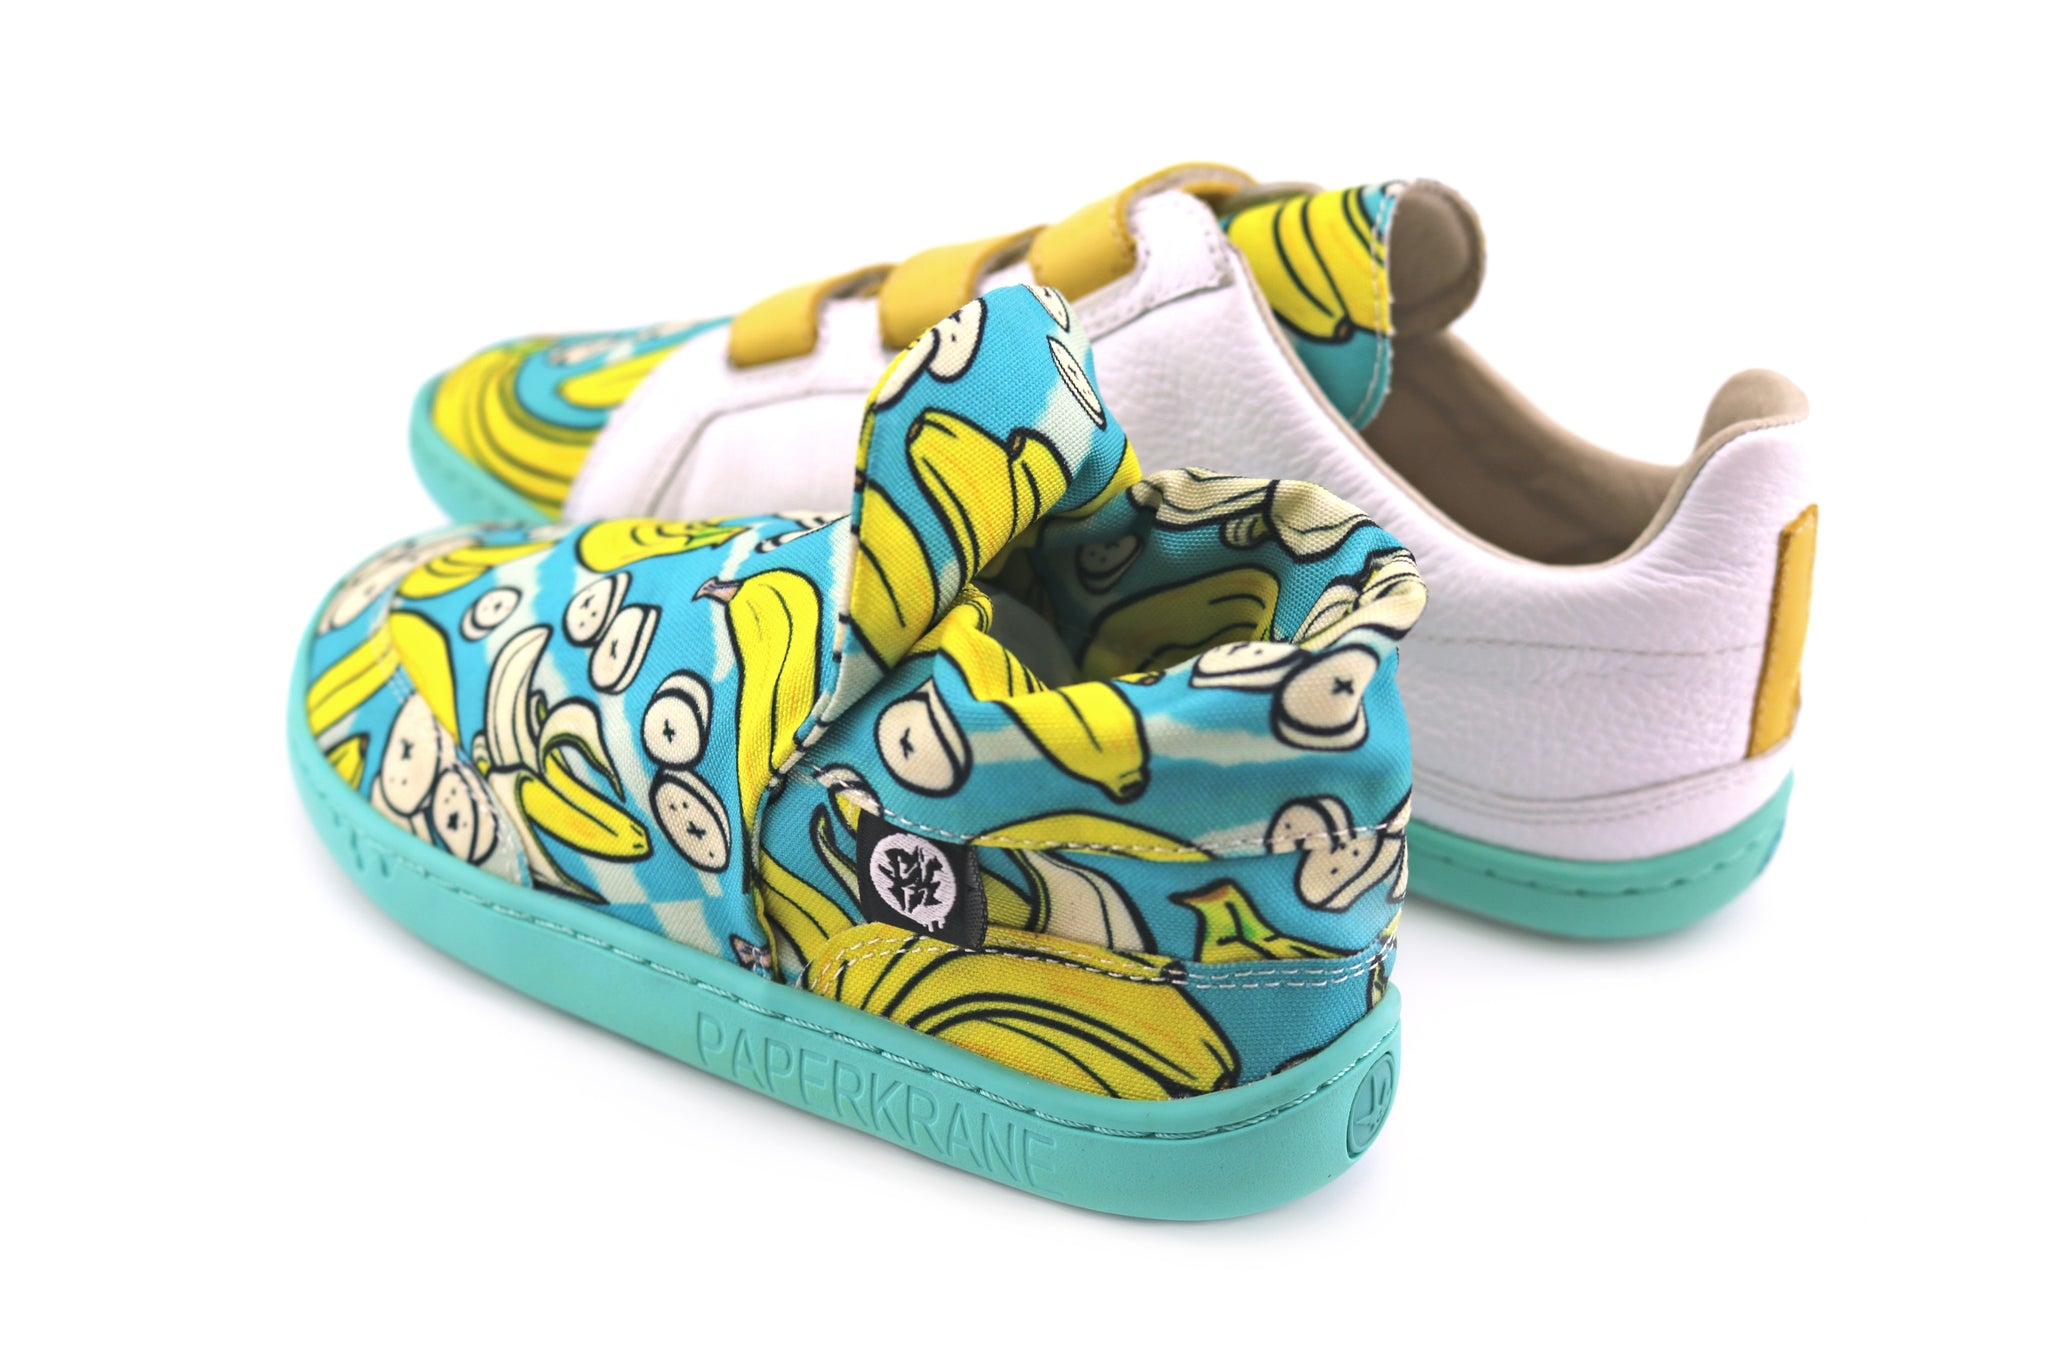 Matching PaperKrane shoes with bananas on them.